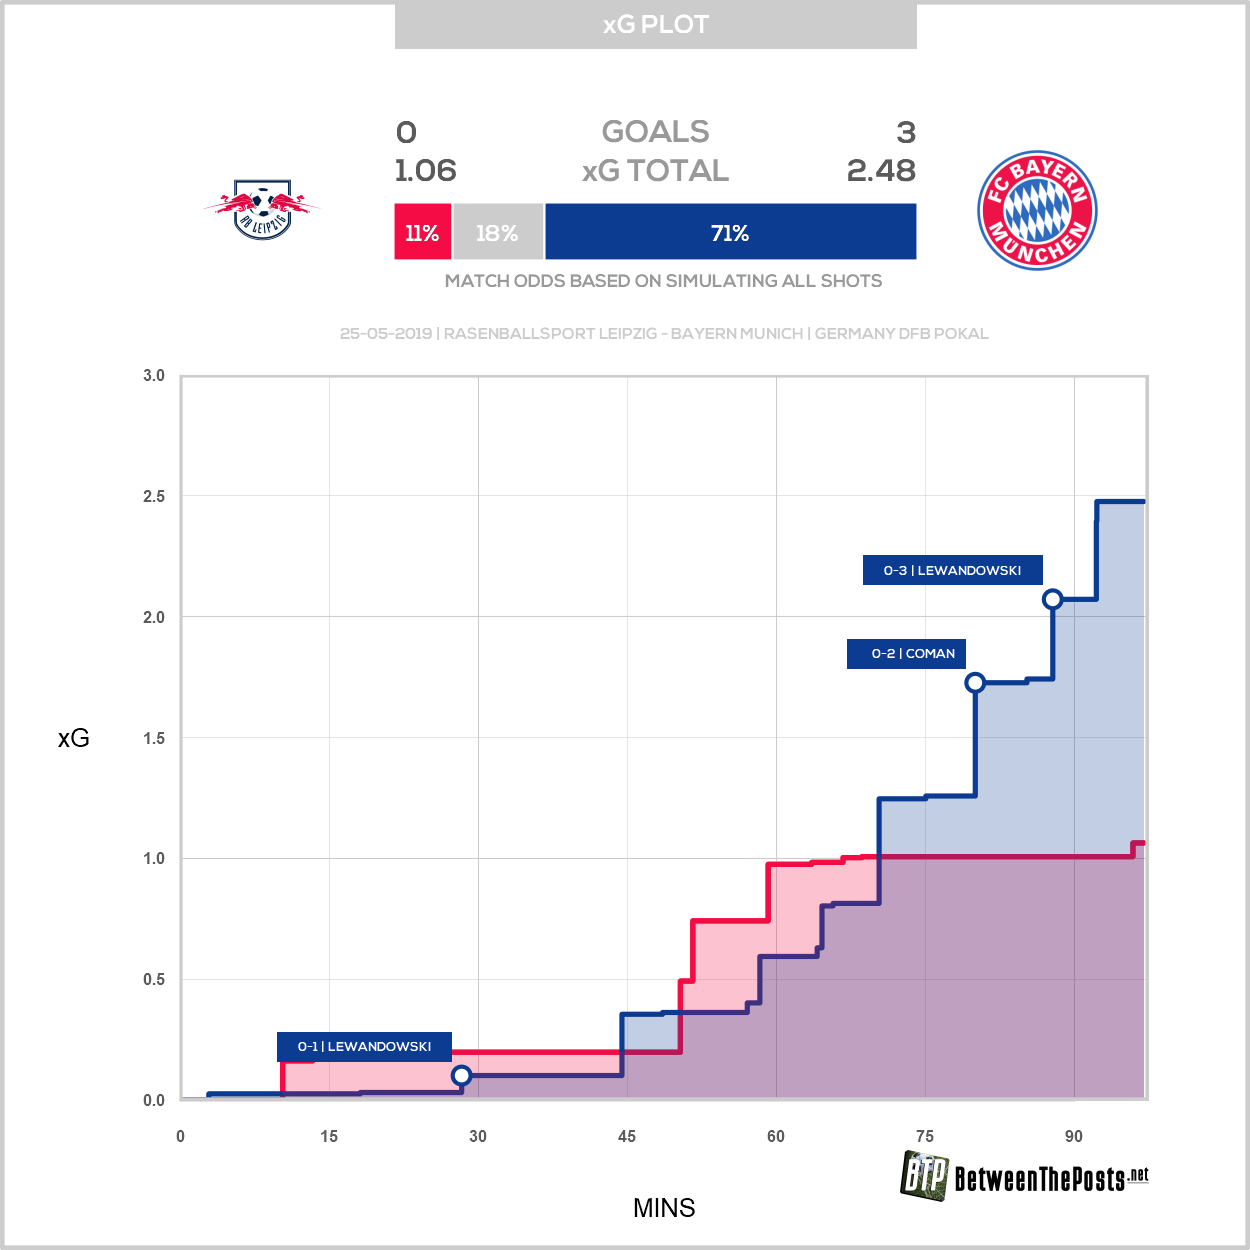 Expected goals plot Rasenballsport Leipzig Bayern Munich 0-3 DFB Pokal